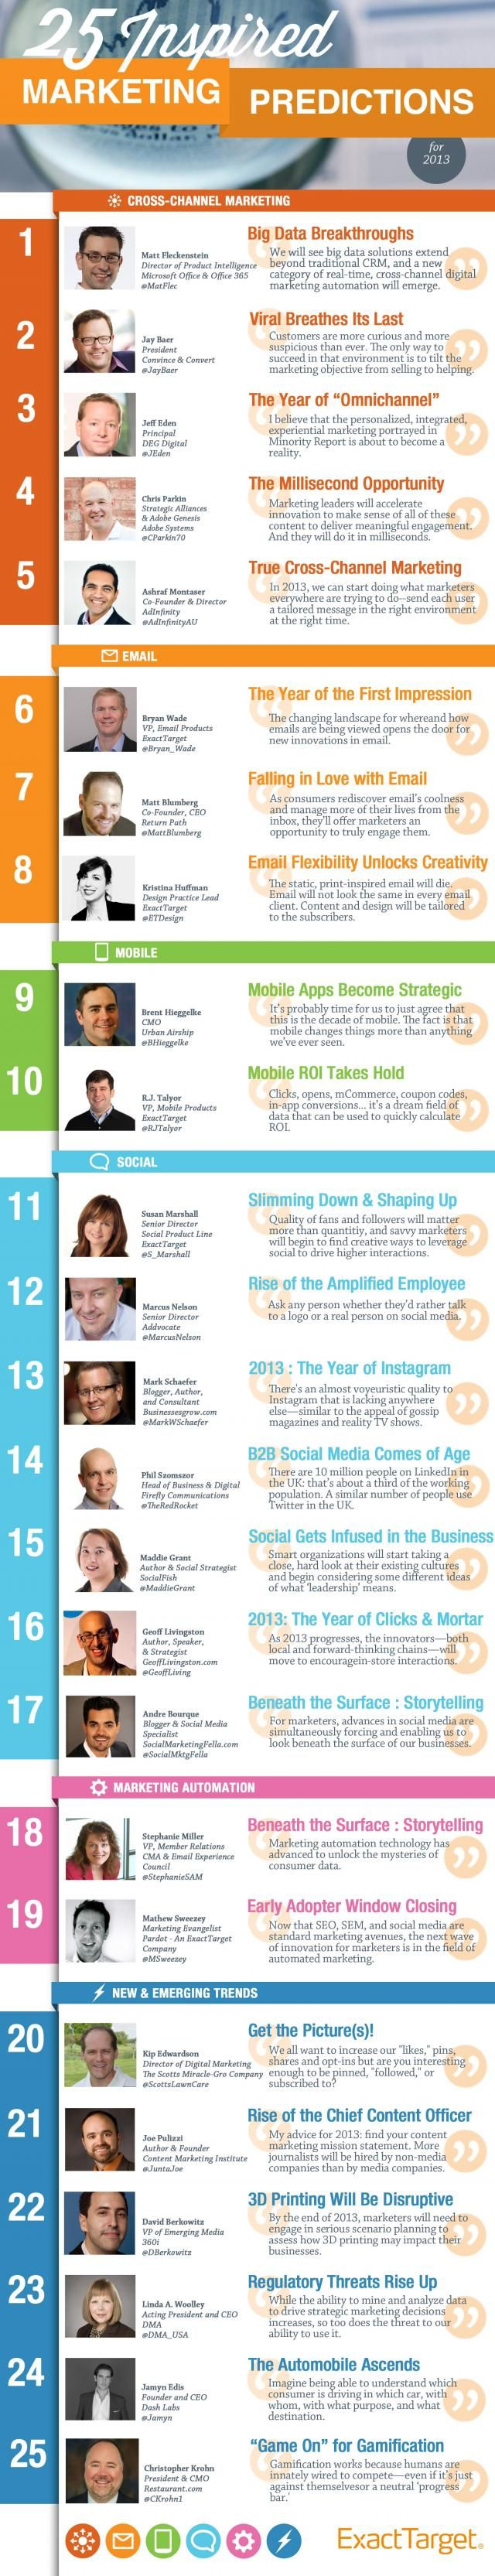 25 Marketing Predictions for 2013 #Infographic For more details can view the Slide here: http://www.slideshare.net/KyleLacy/2013-inspired-marketing-predictions-from-exacttarget